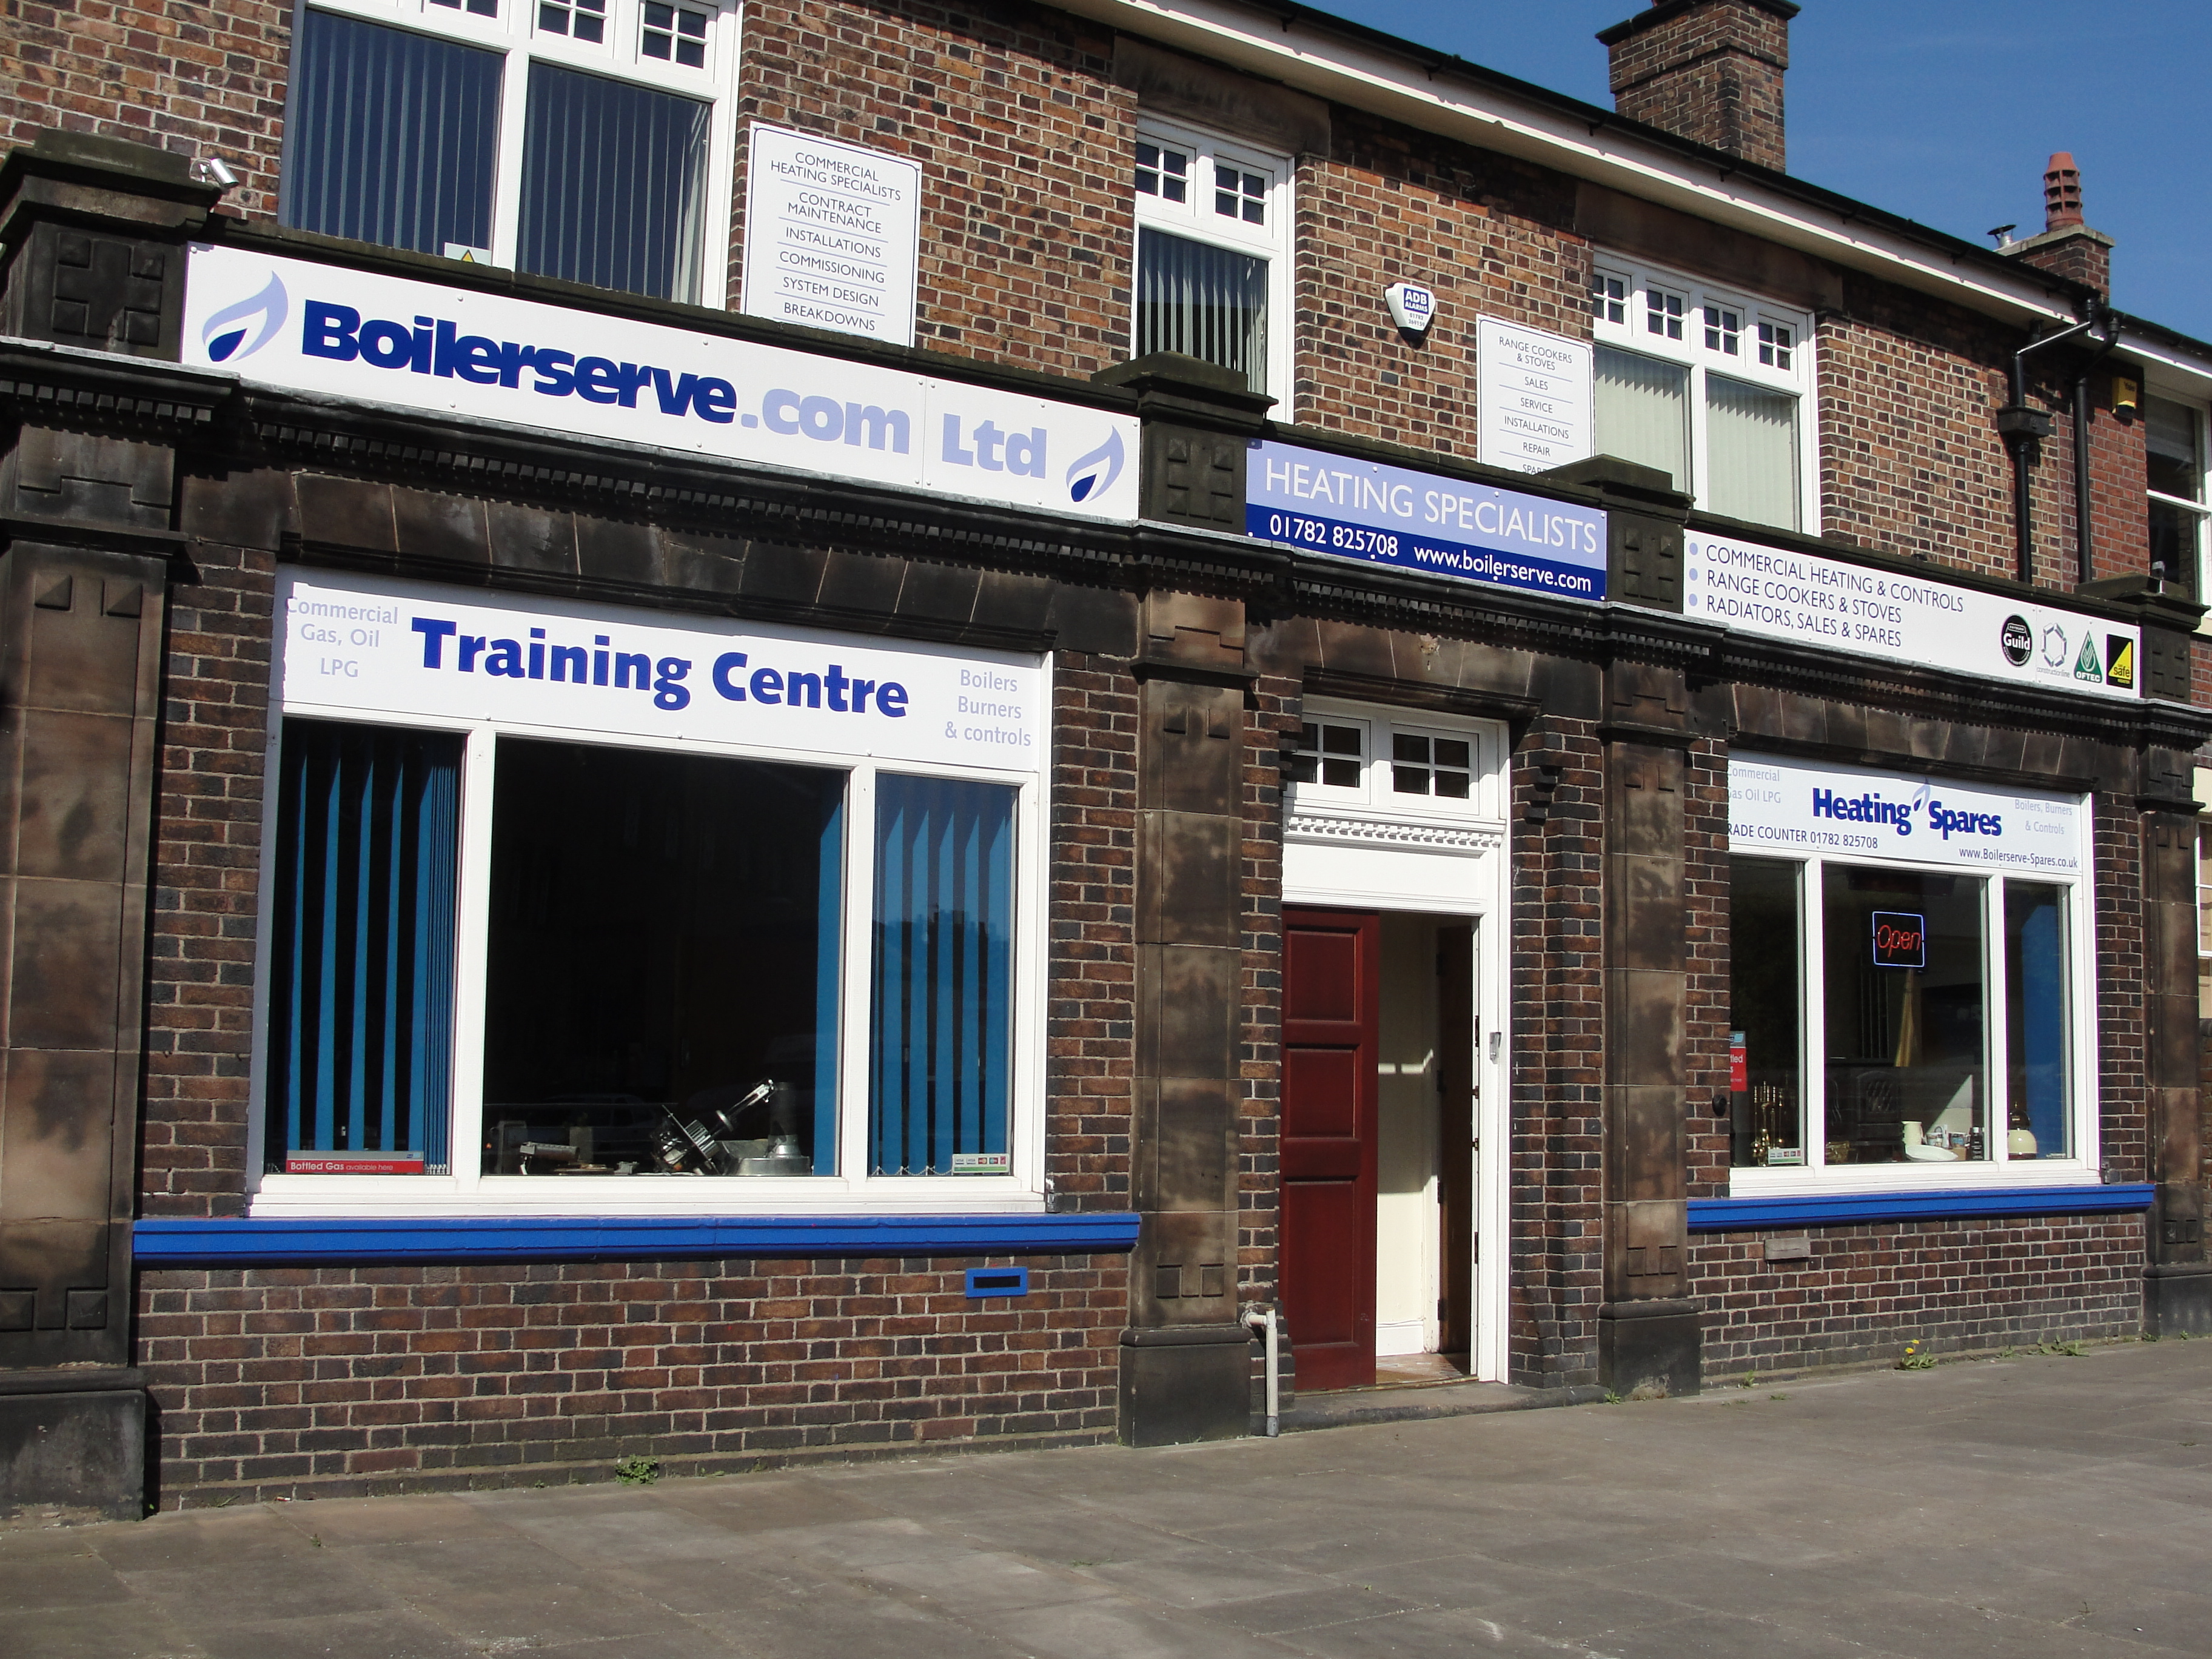 Boilerserve Offices Commercial Heating Engineers & Training Centre .With Sales Counter